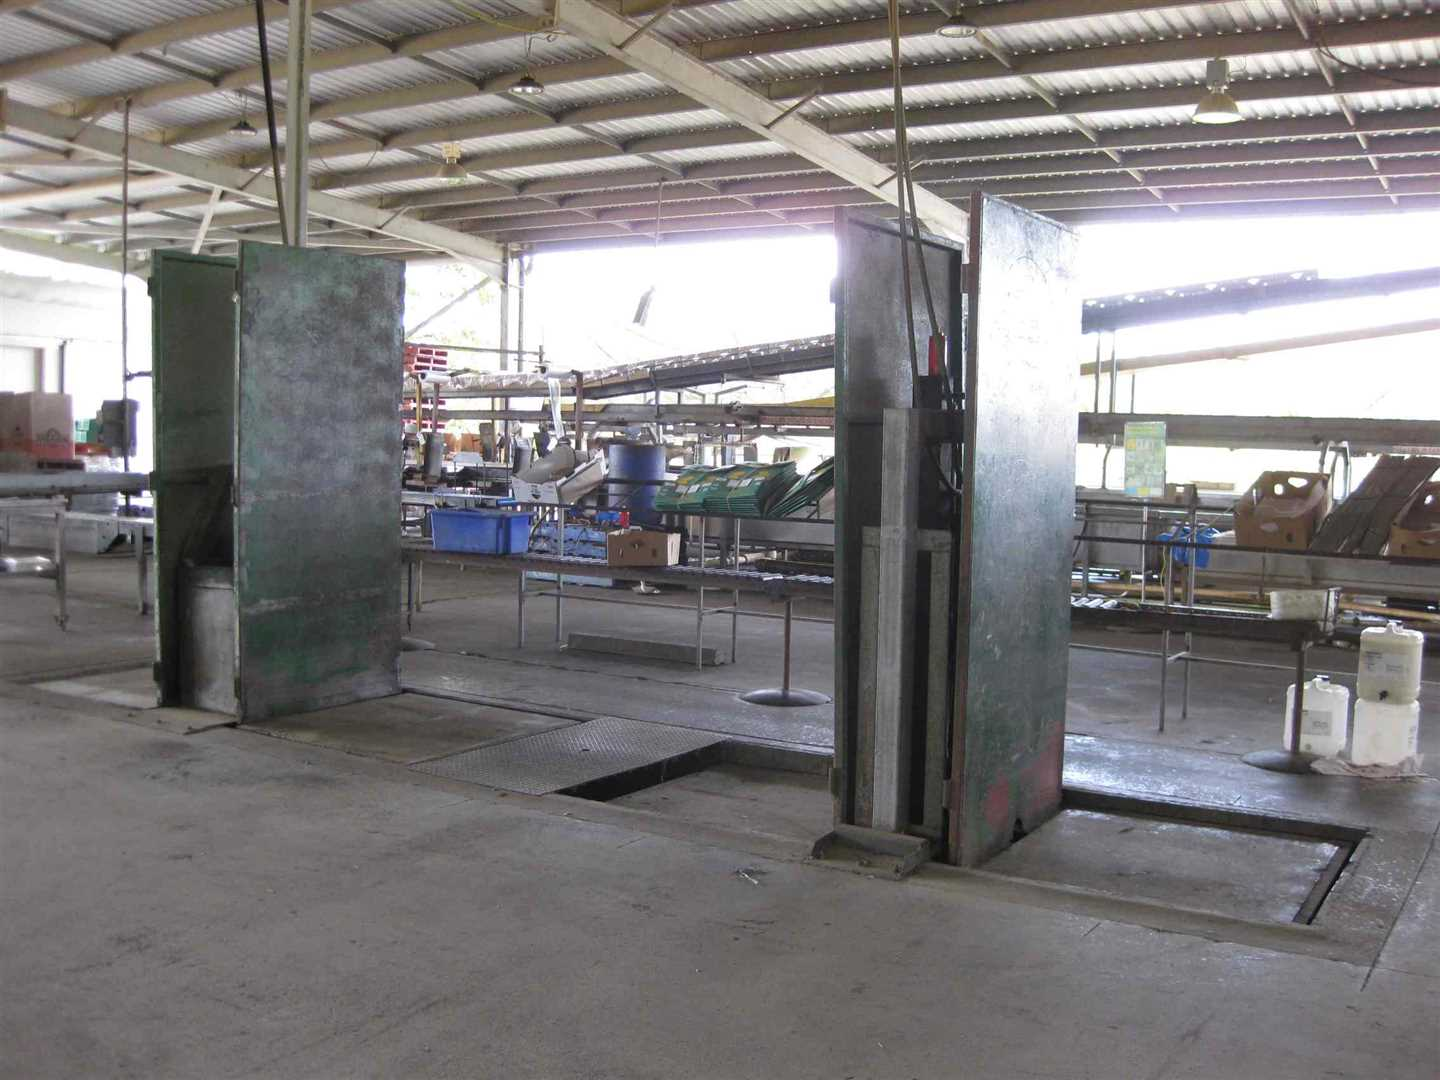 View of part of inside packing shed showing part of two double hydraulic pallet stackers